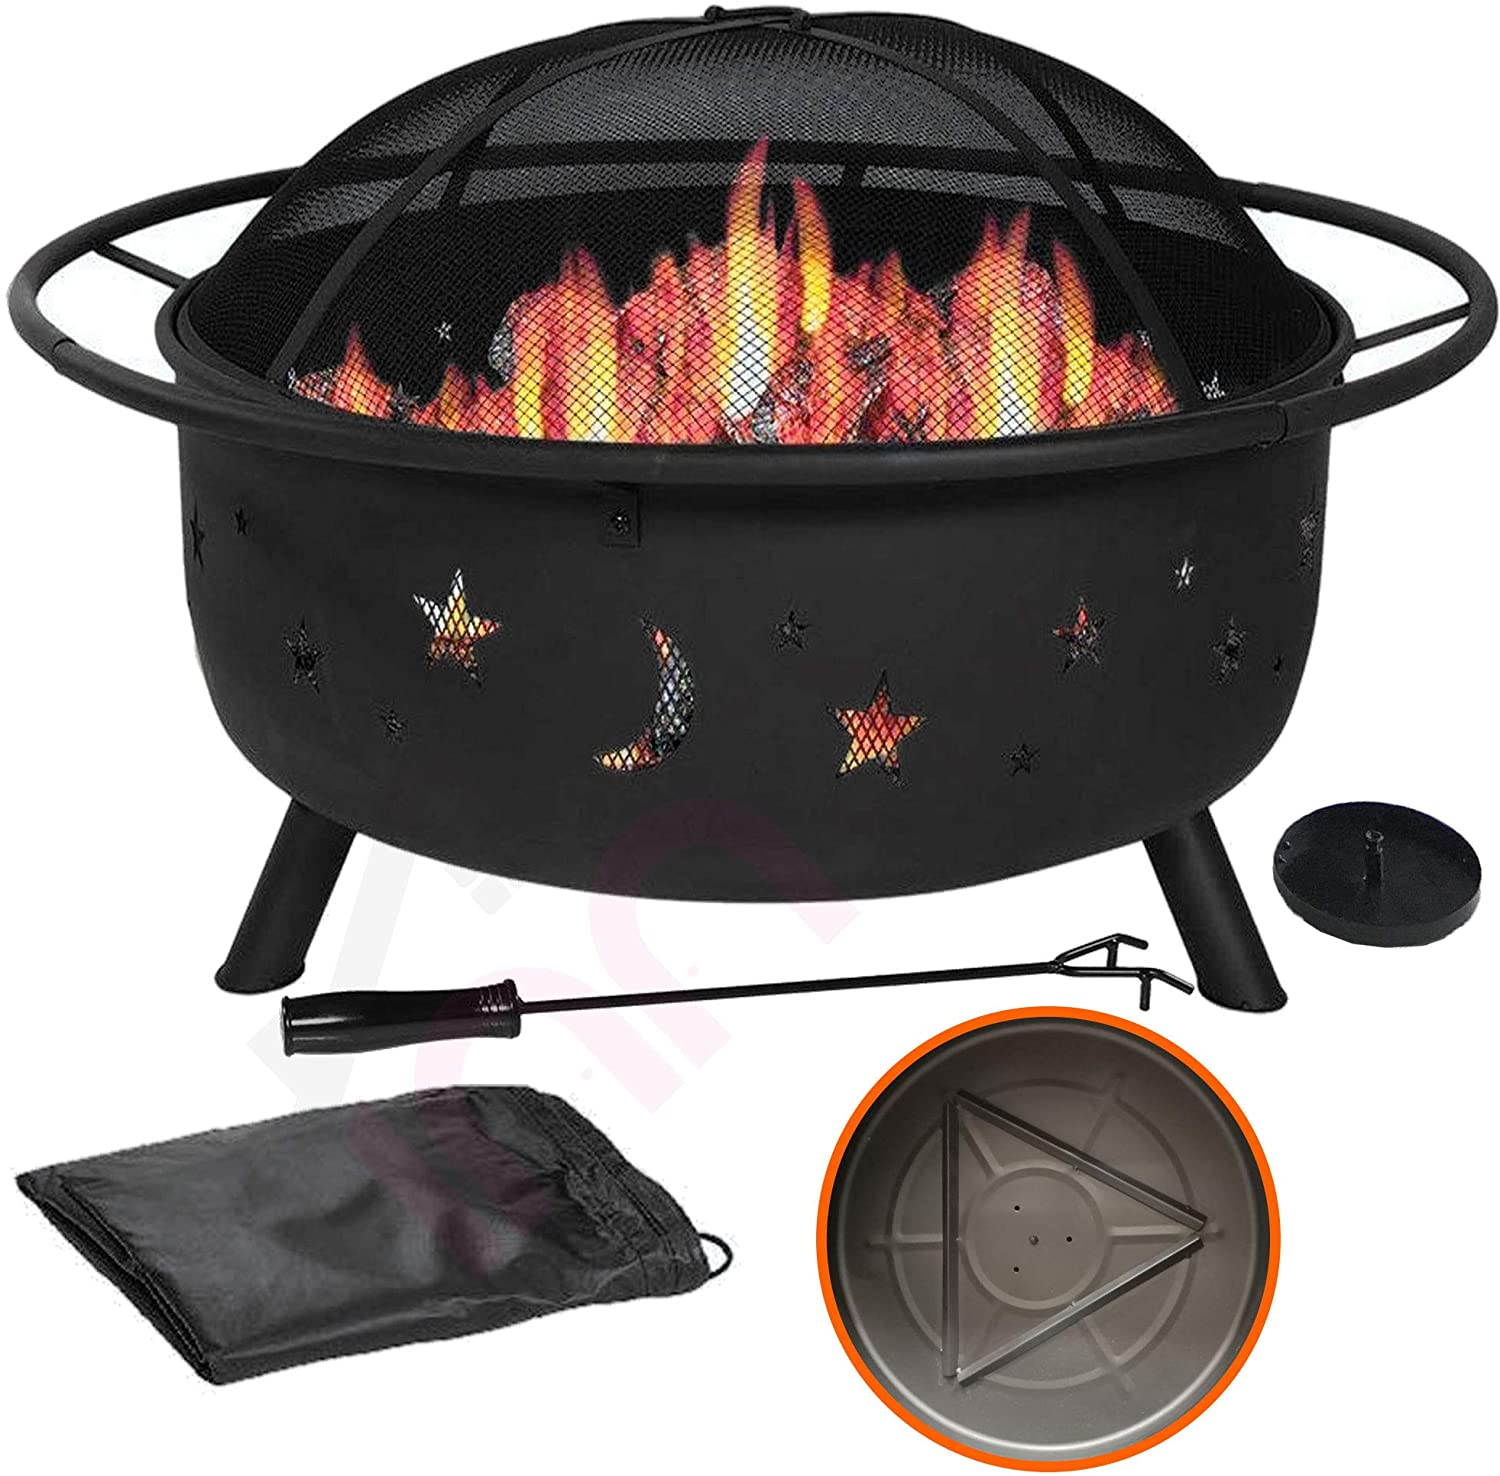 "31"" Outdoor Fire Pit Set - 6-in-1 Large Bonfire Wood Burning Firepit Bowl - Spark Screen, Fireplace Poker, Ash Plate, Drainage Holes, Metal Grate, Waterproof Cover - For Outdoor Backyard Terrace Patio"